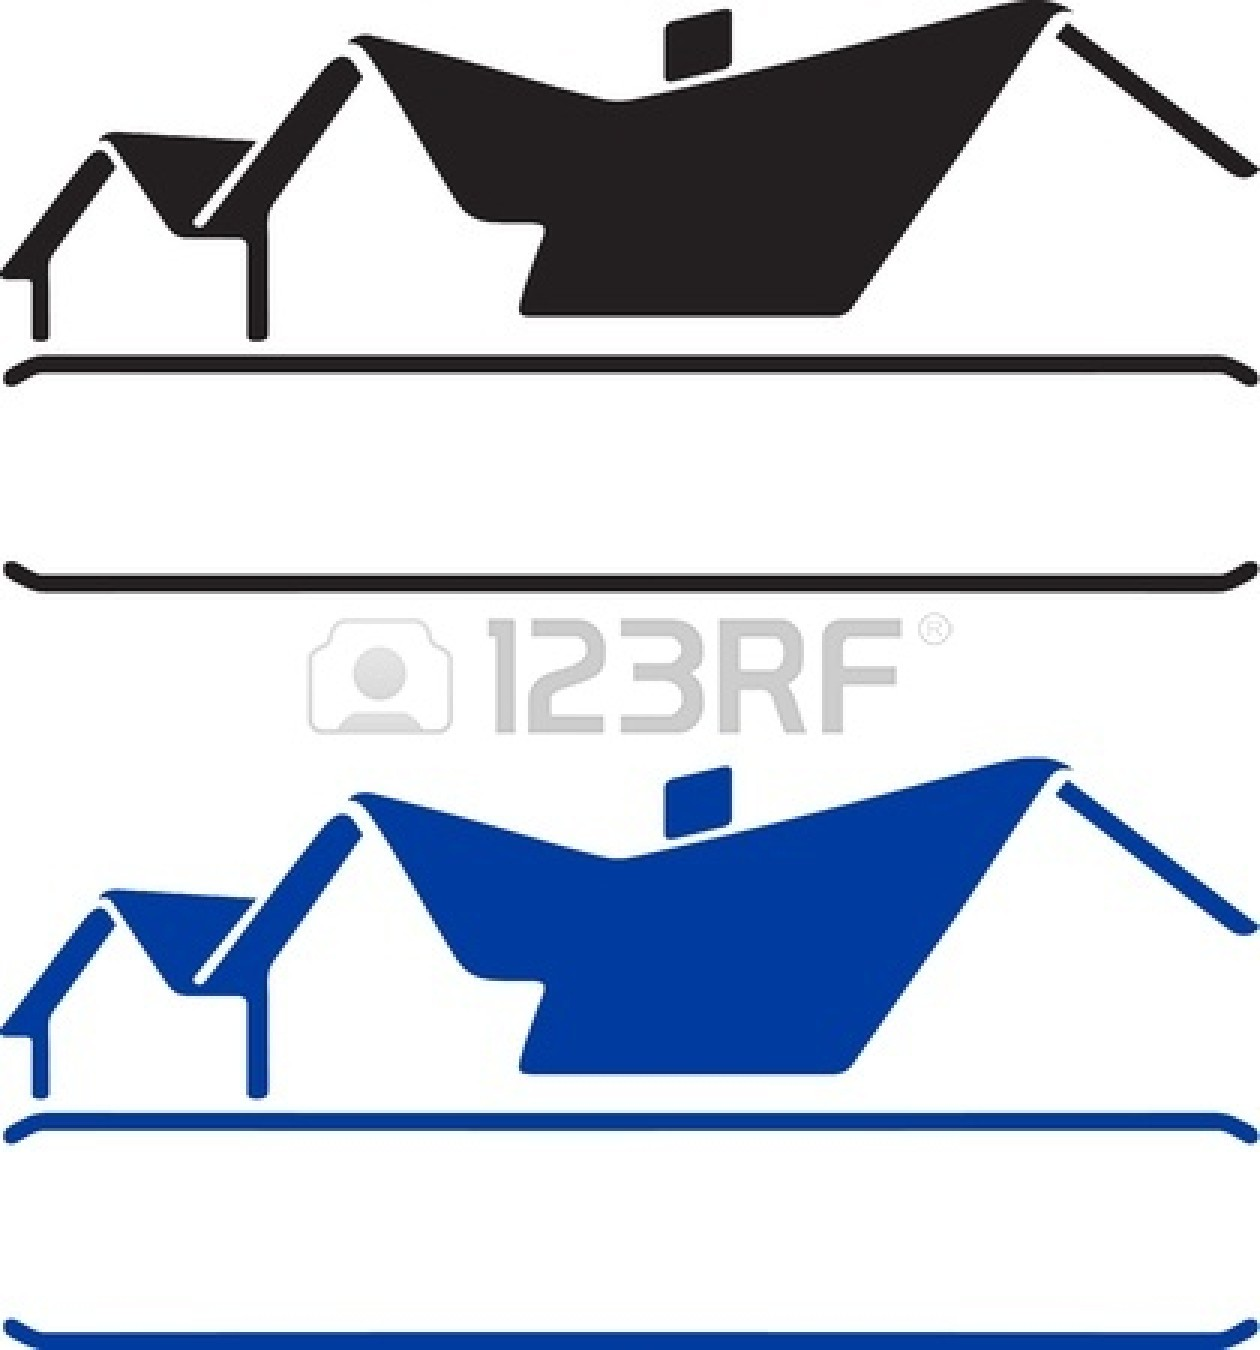 1260x1350 Roof Outline Clip Art, Free Roof Outline Clip Art